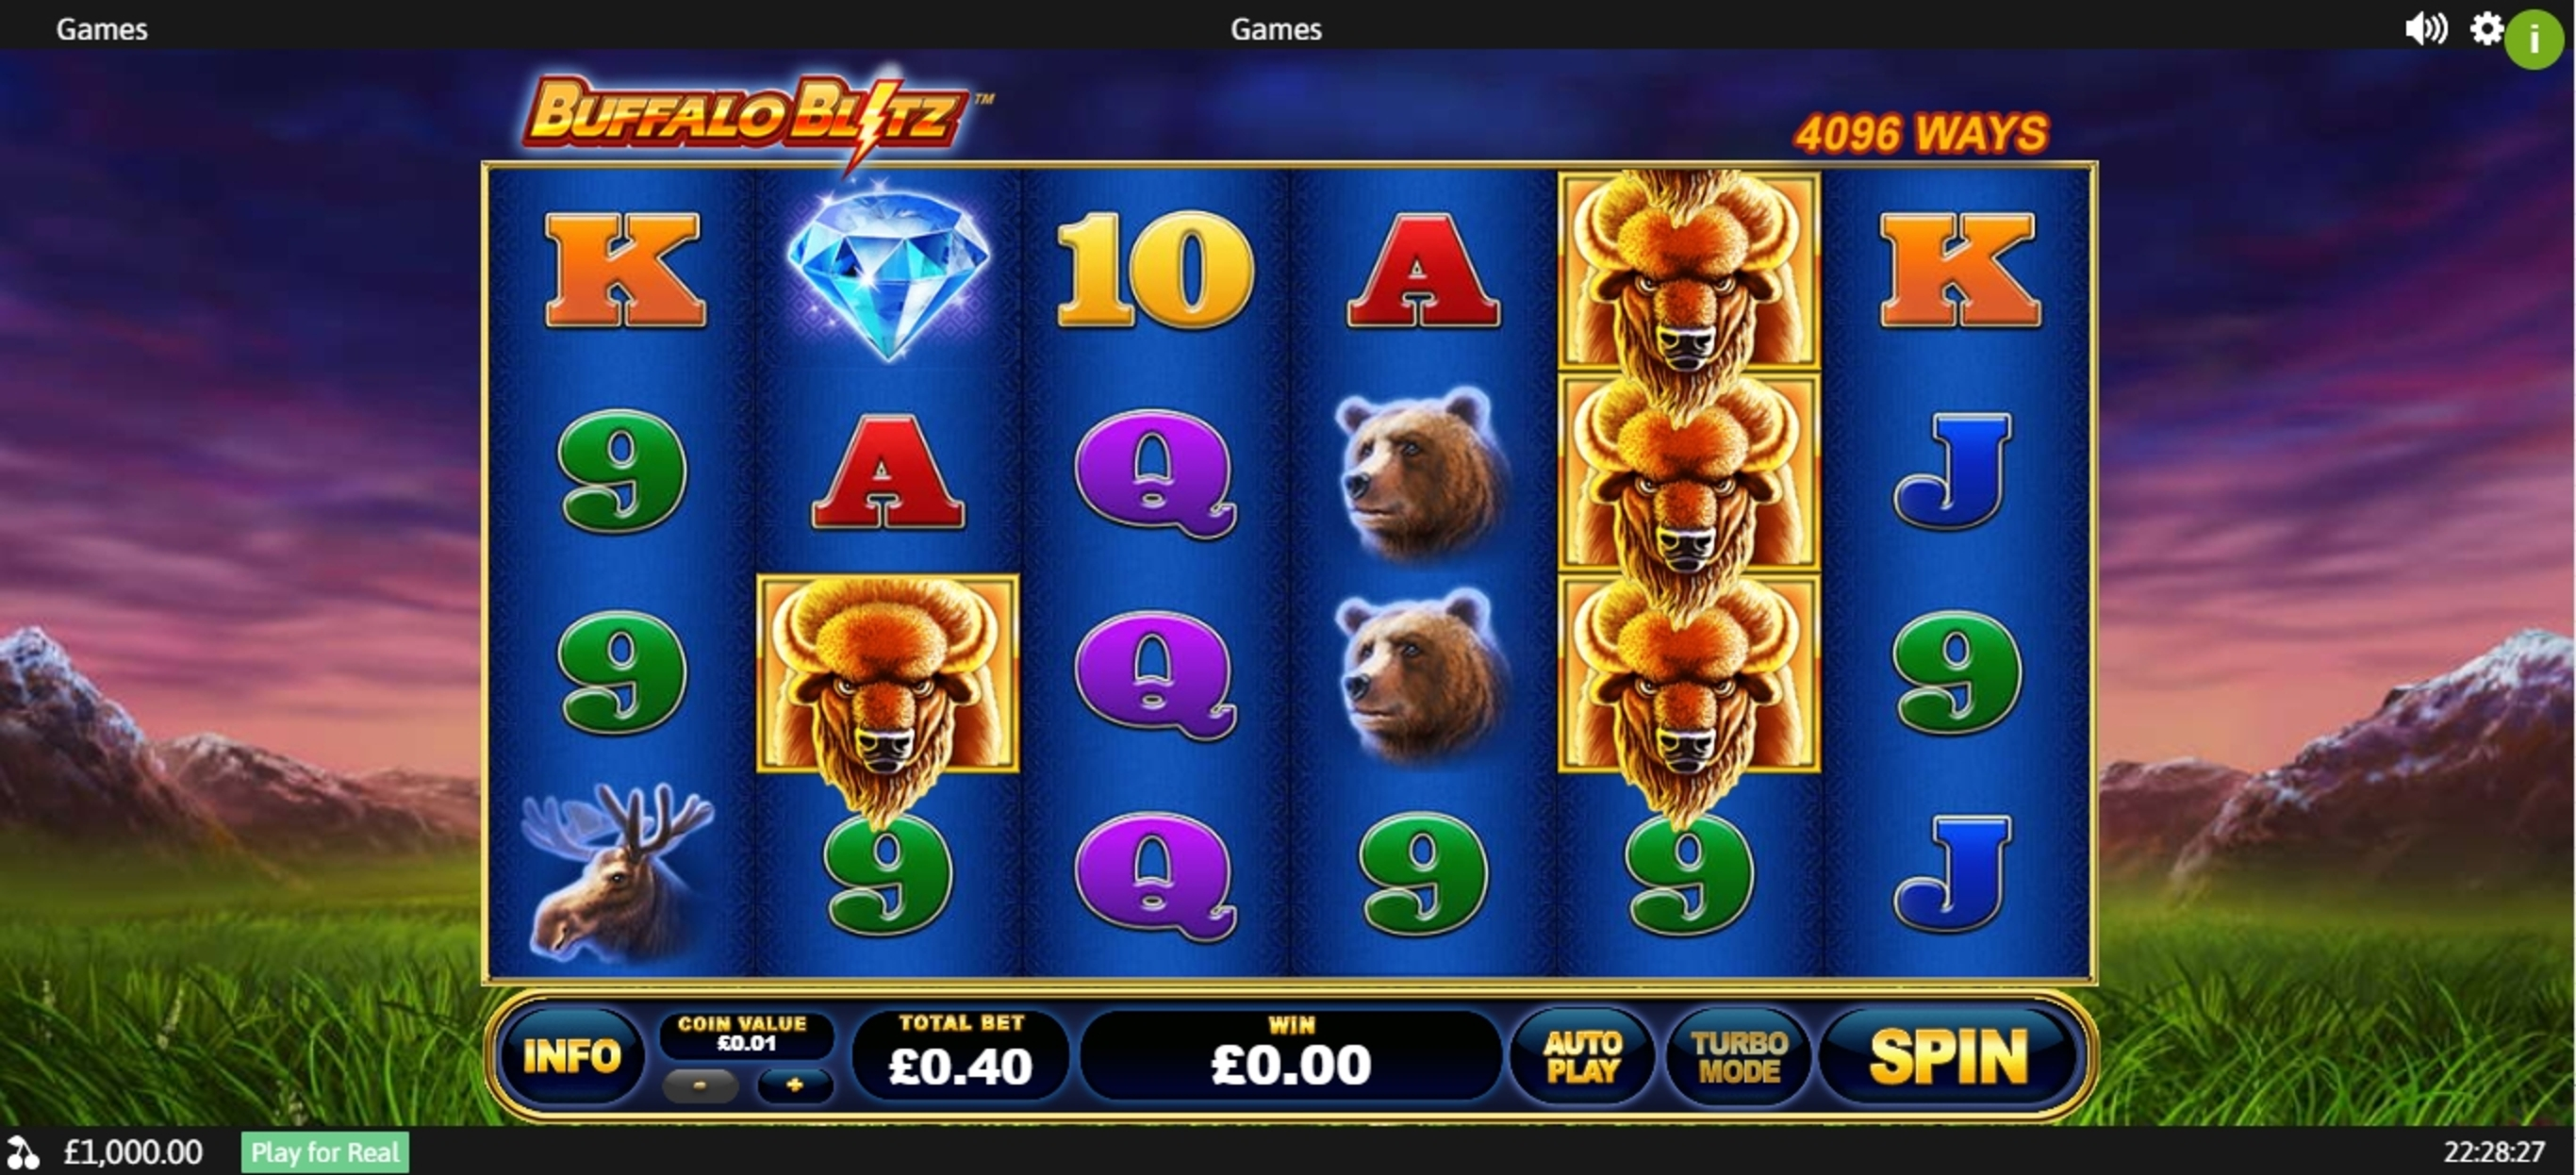 Reels in Buffalo Blitz Slot Game by Playtech